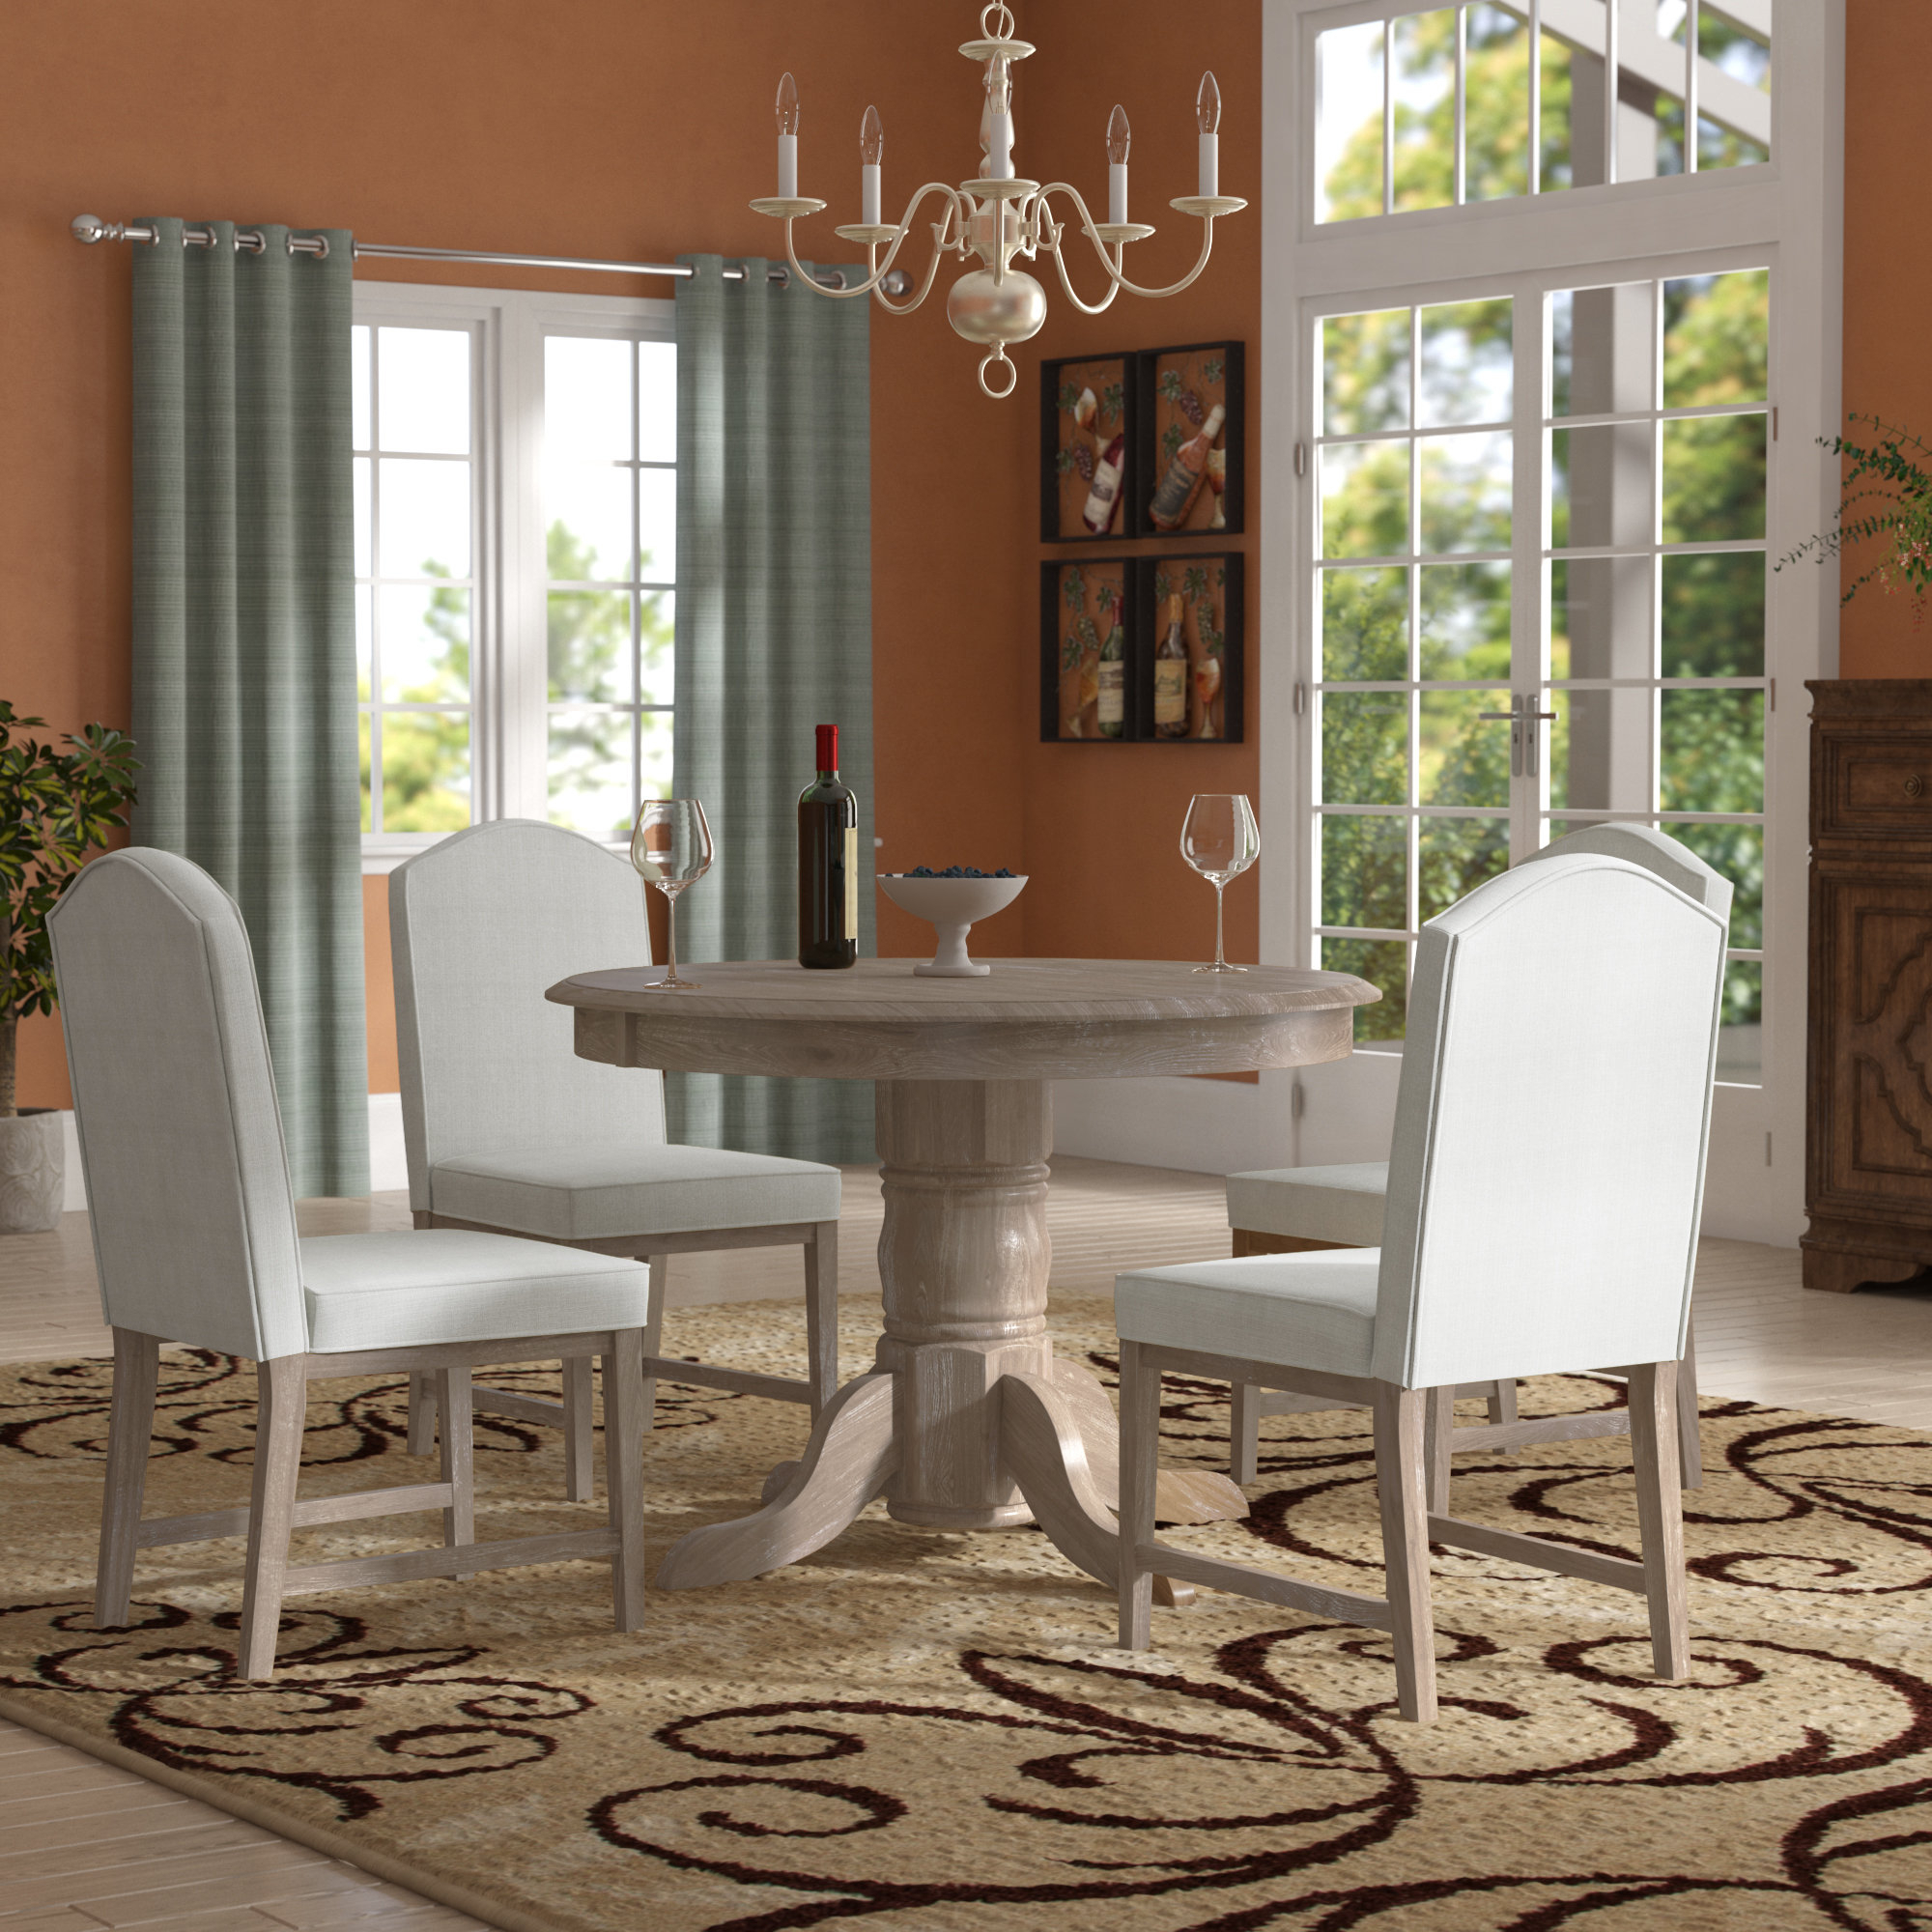 Barwick 5 Piece Dining Set Pertaining To 2017 Liles 5 Piece Breakfast Nook Dining Sets (Image 1 of 20)